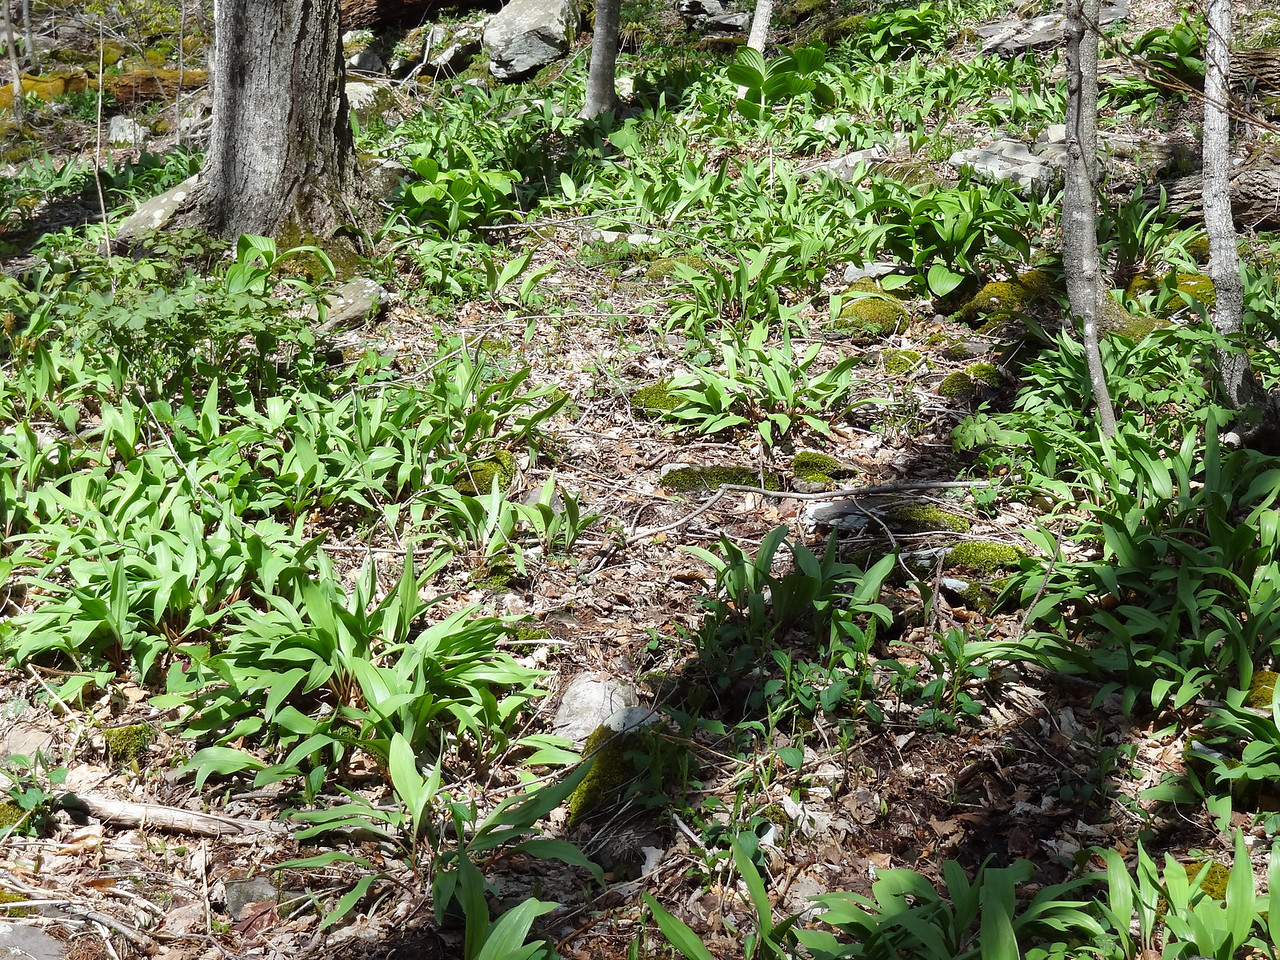 Abundant wild ramps. Make your pants go root-a-toot-toot. I picked a big bunch for Dick Senger, my future father-in-law. And it is strictly that Jenny is a hottie, not that Dick has a fishing camp on Oneida Lake. I went there once to install the dock into 33°F water, then I was promptly asked to leave until the end of the season when we had to pull the dock out. Boy, did it look fun when the family piloted away in the new boat....